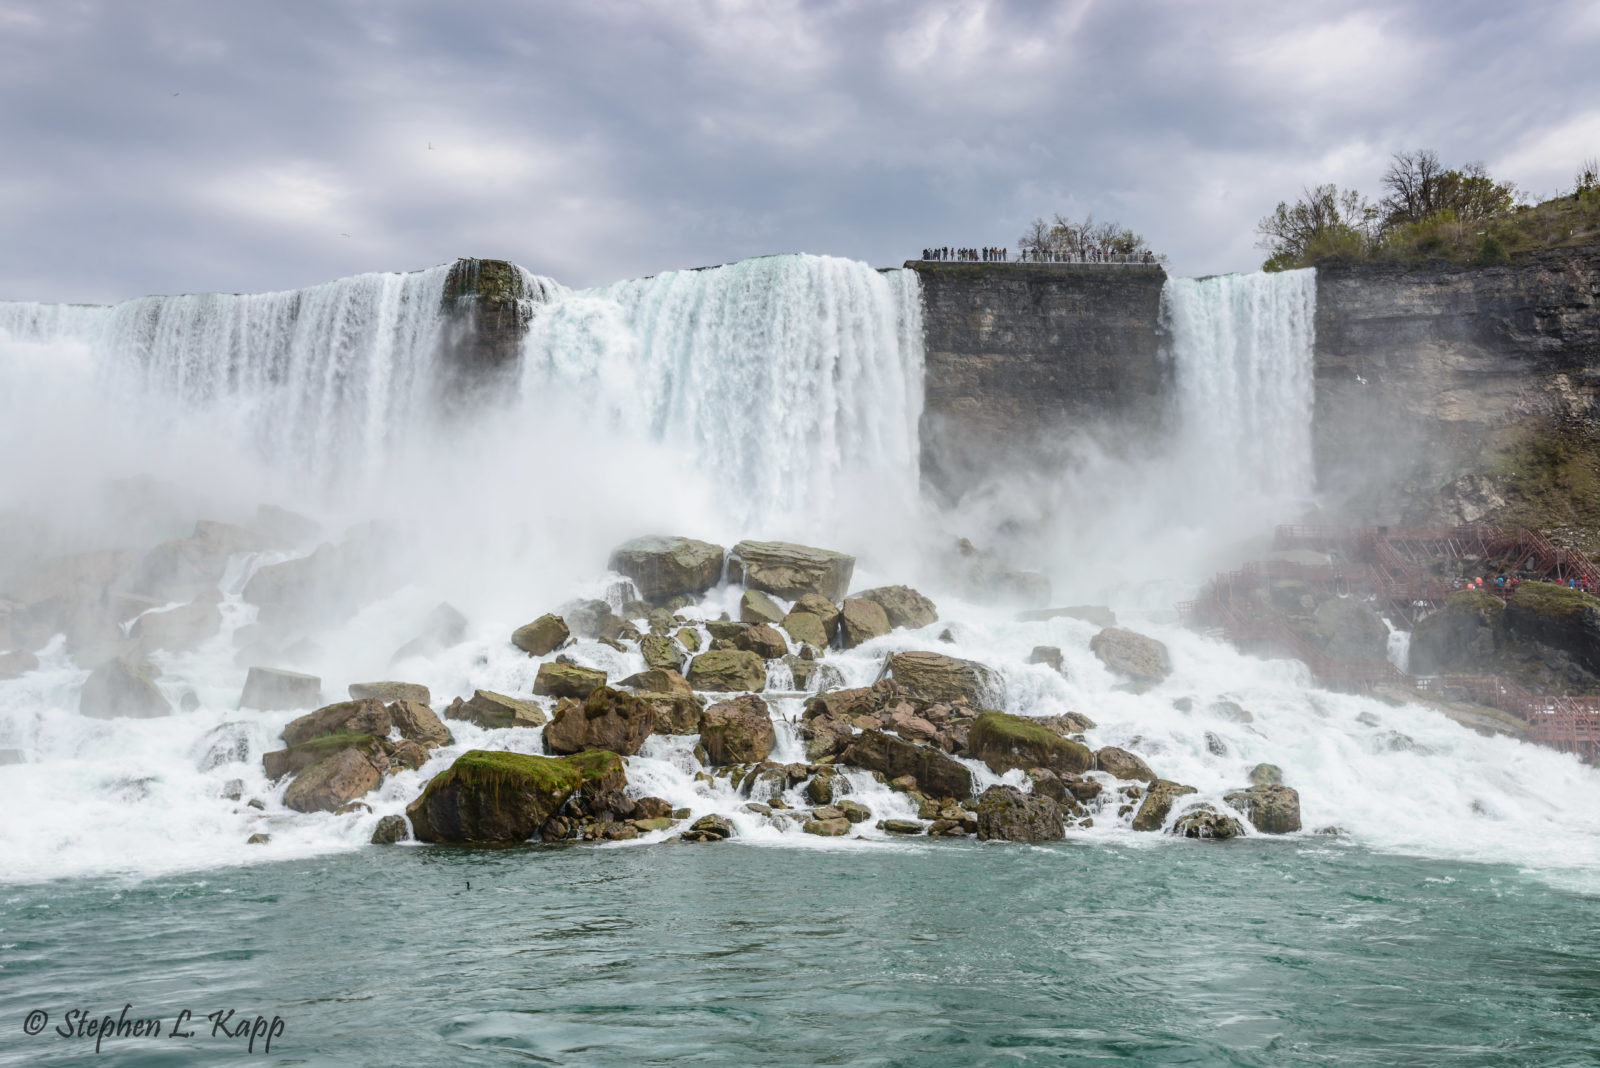 American Falls and Bridal Veil Falls at Right (Niagara Falls)